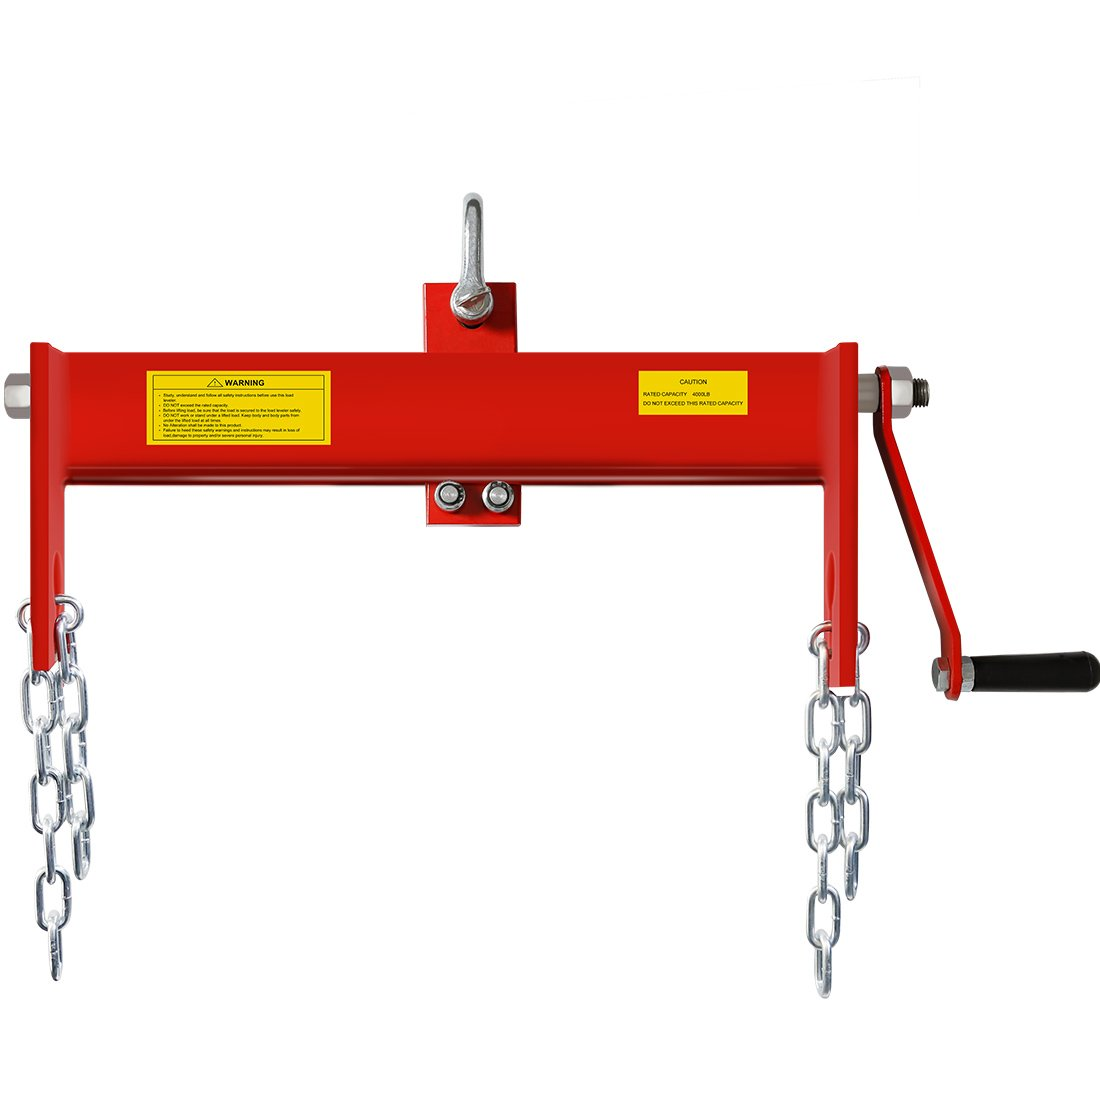 VIVOHOME Heavy Duty Steel 2 Ton Engine Hoist Load Leveler with 2 Chains 4000 lbs by VIVOHOME